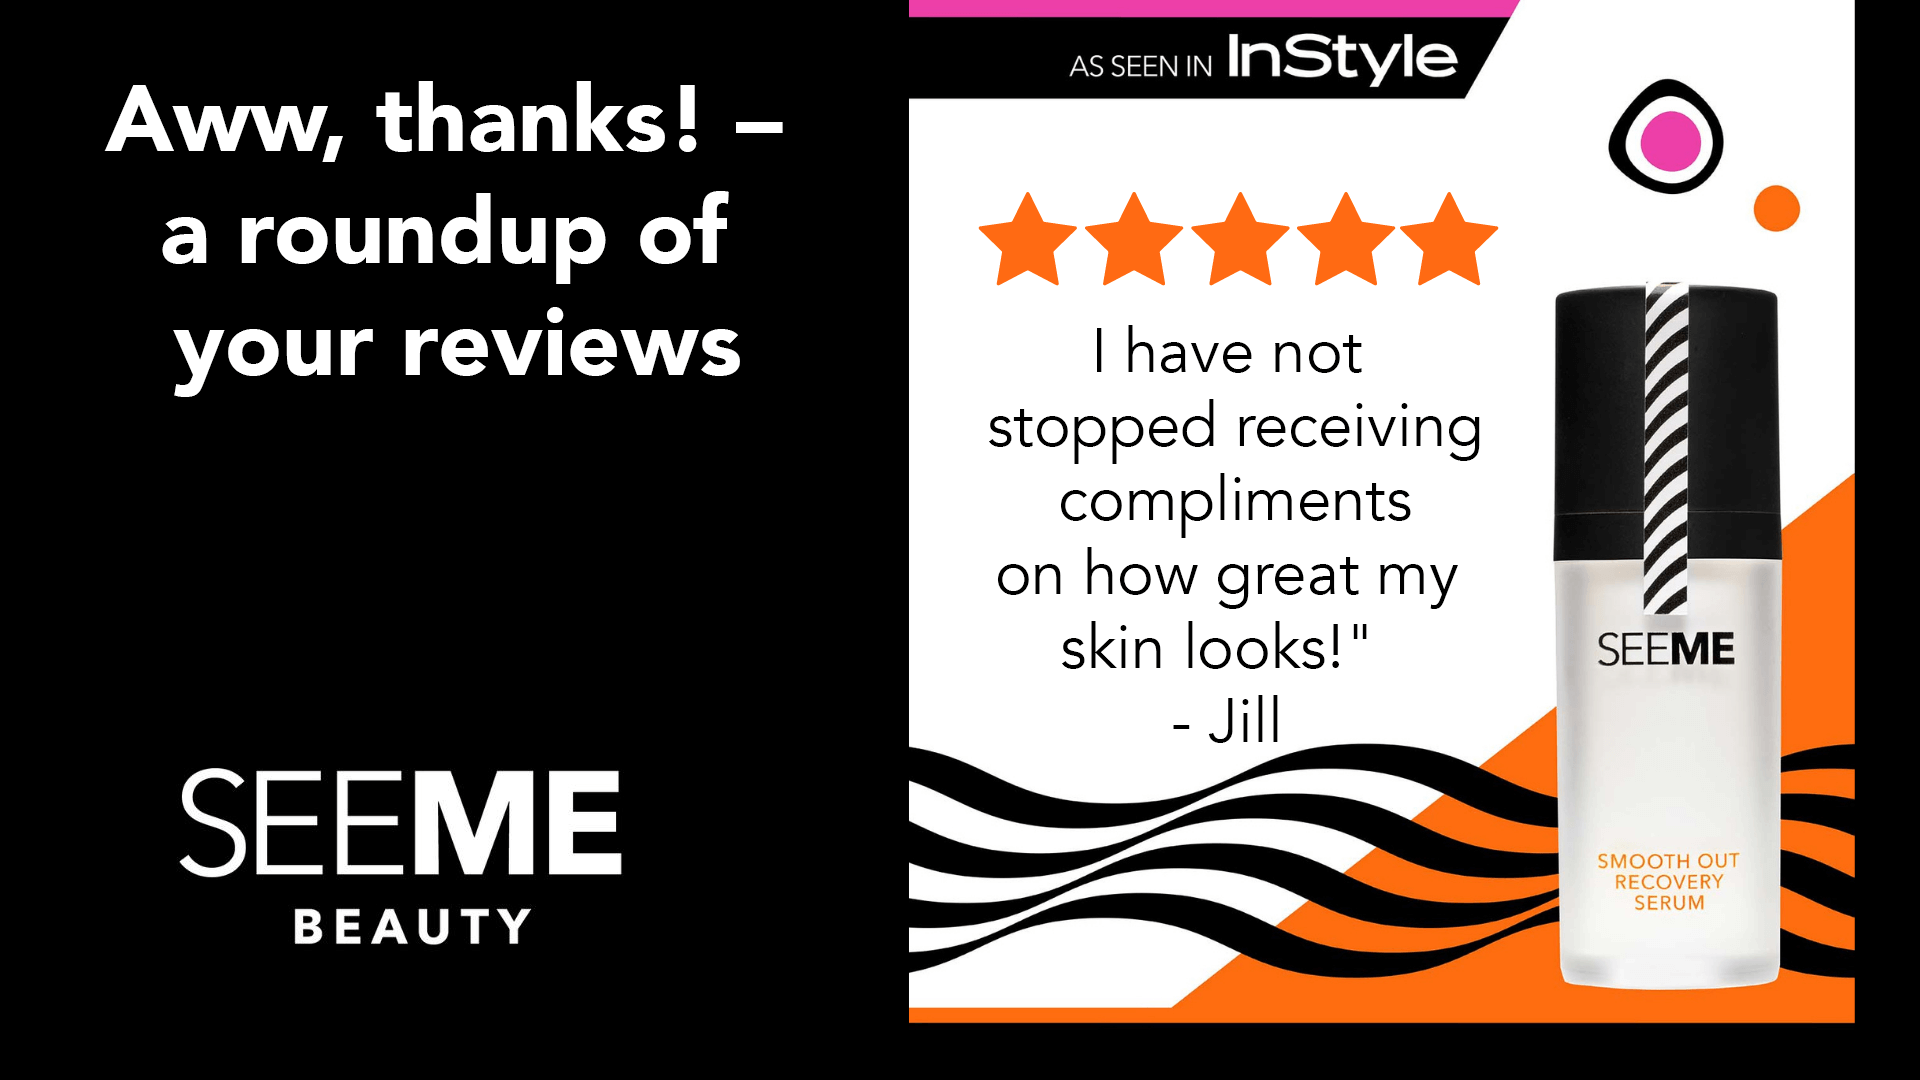 Aww, thanks! a roundup of your reviews with a 5 star review from Jill, a SeeMe Beauty satisfied consumer